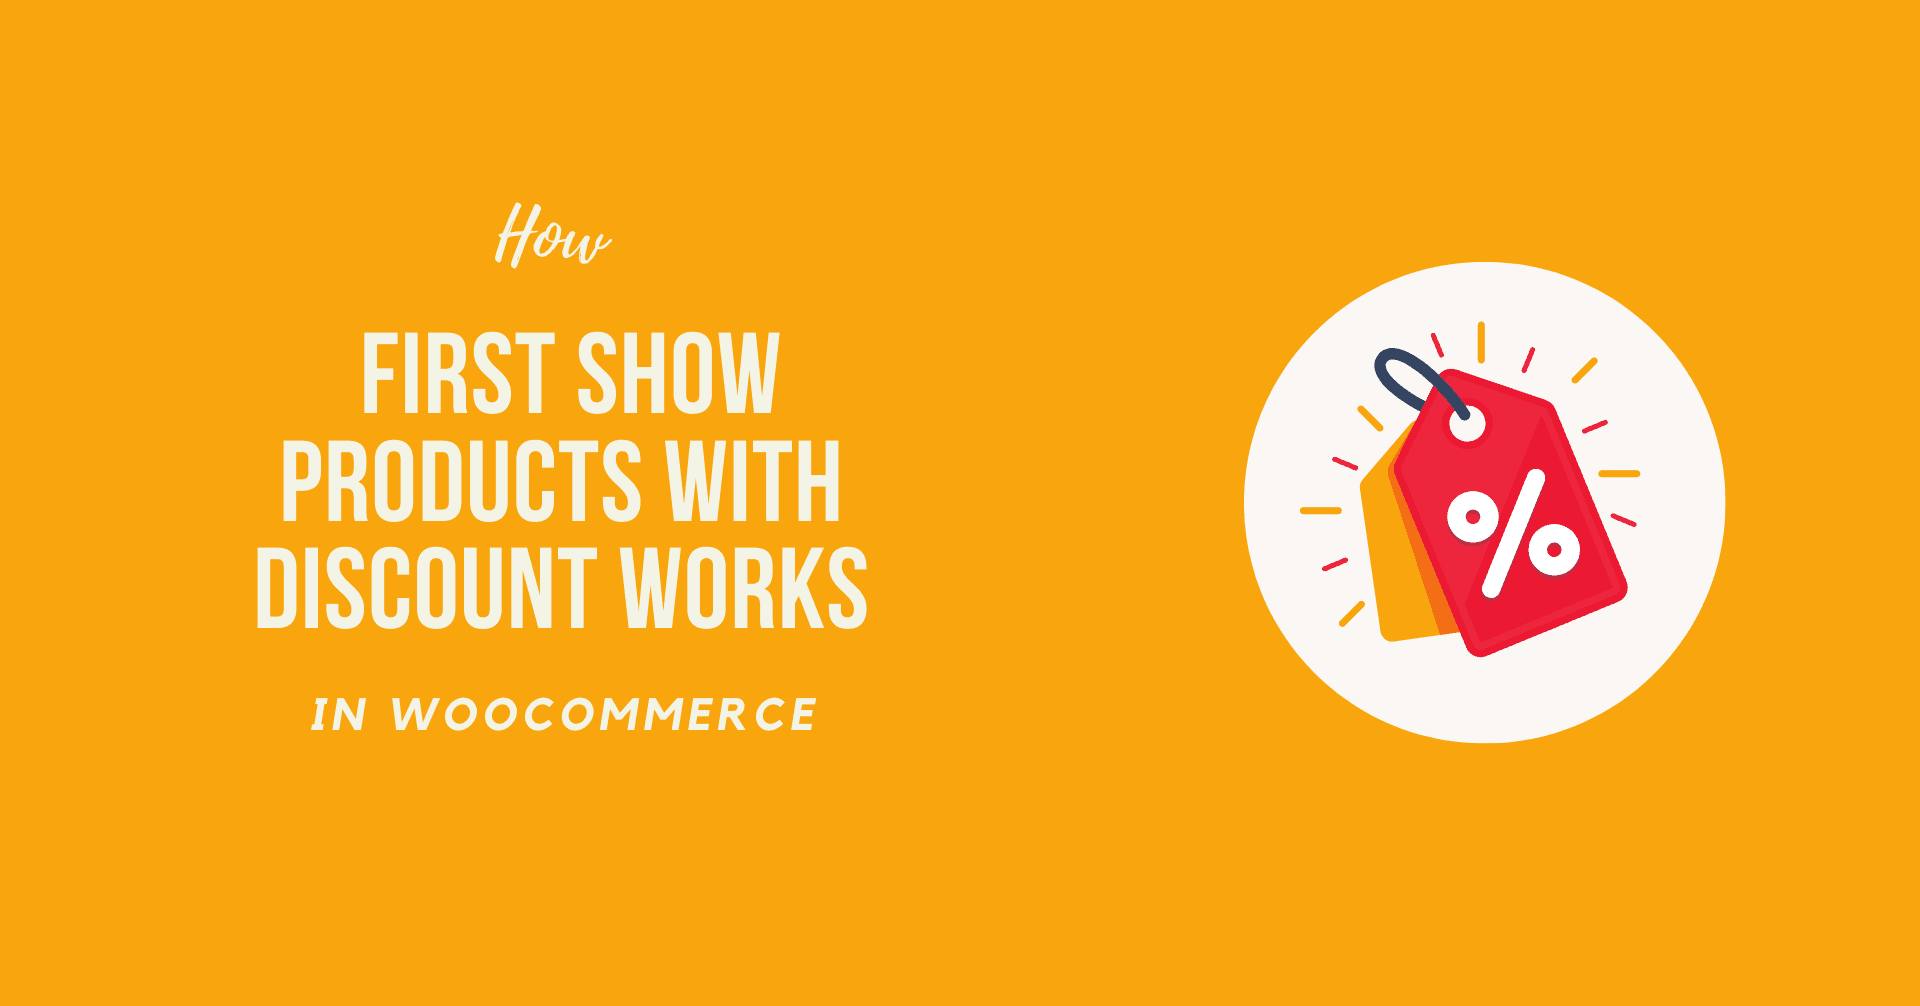 How WooCommerce First Show Products with Discount Works